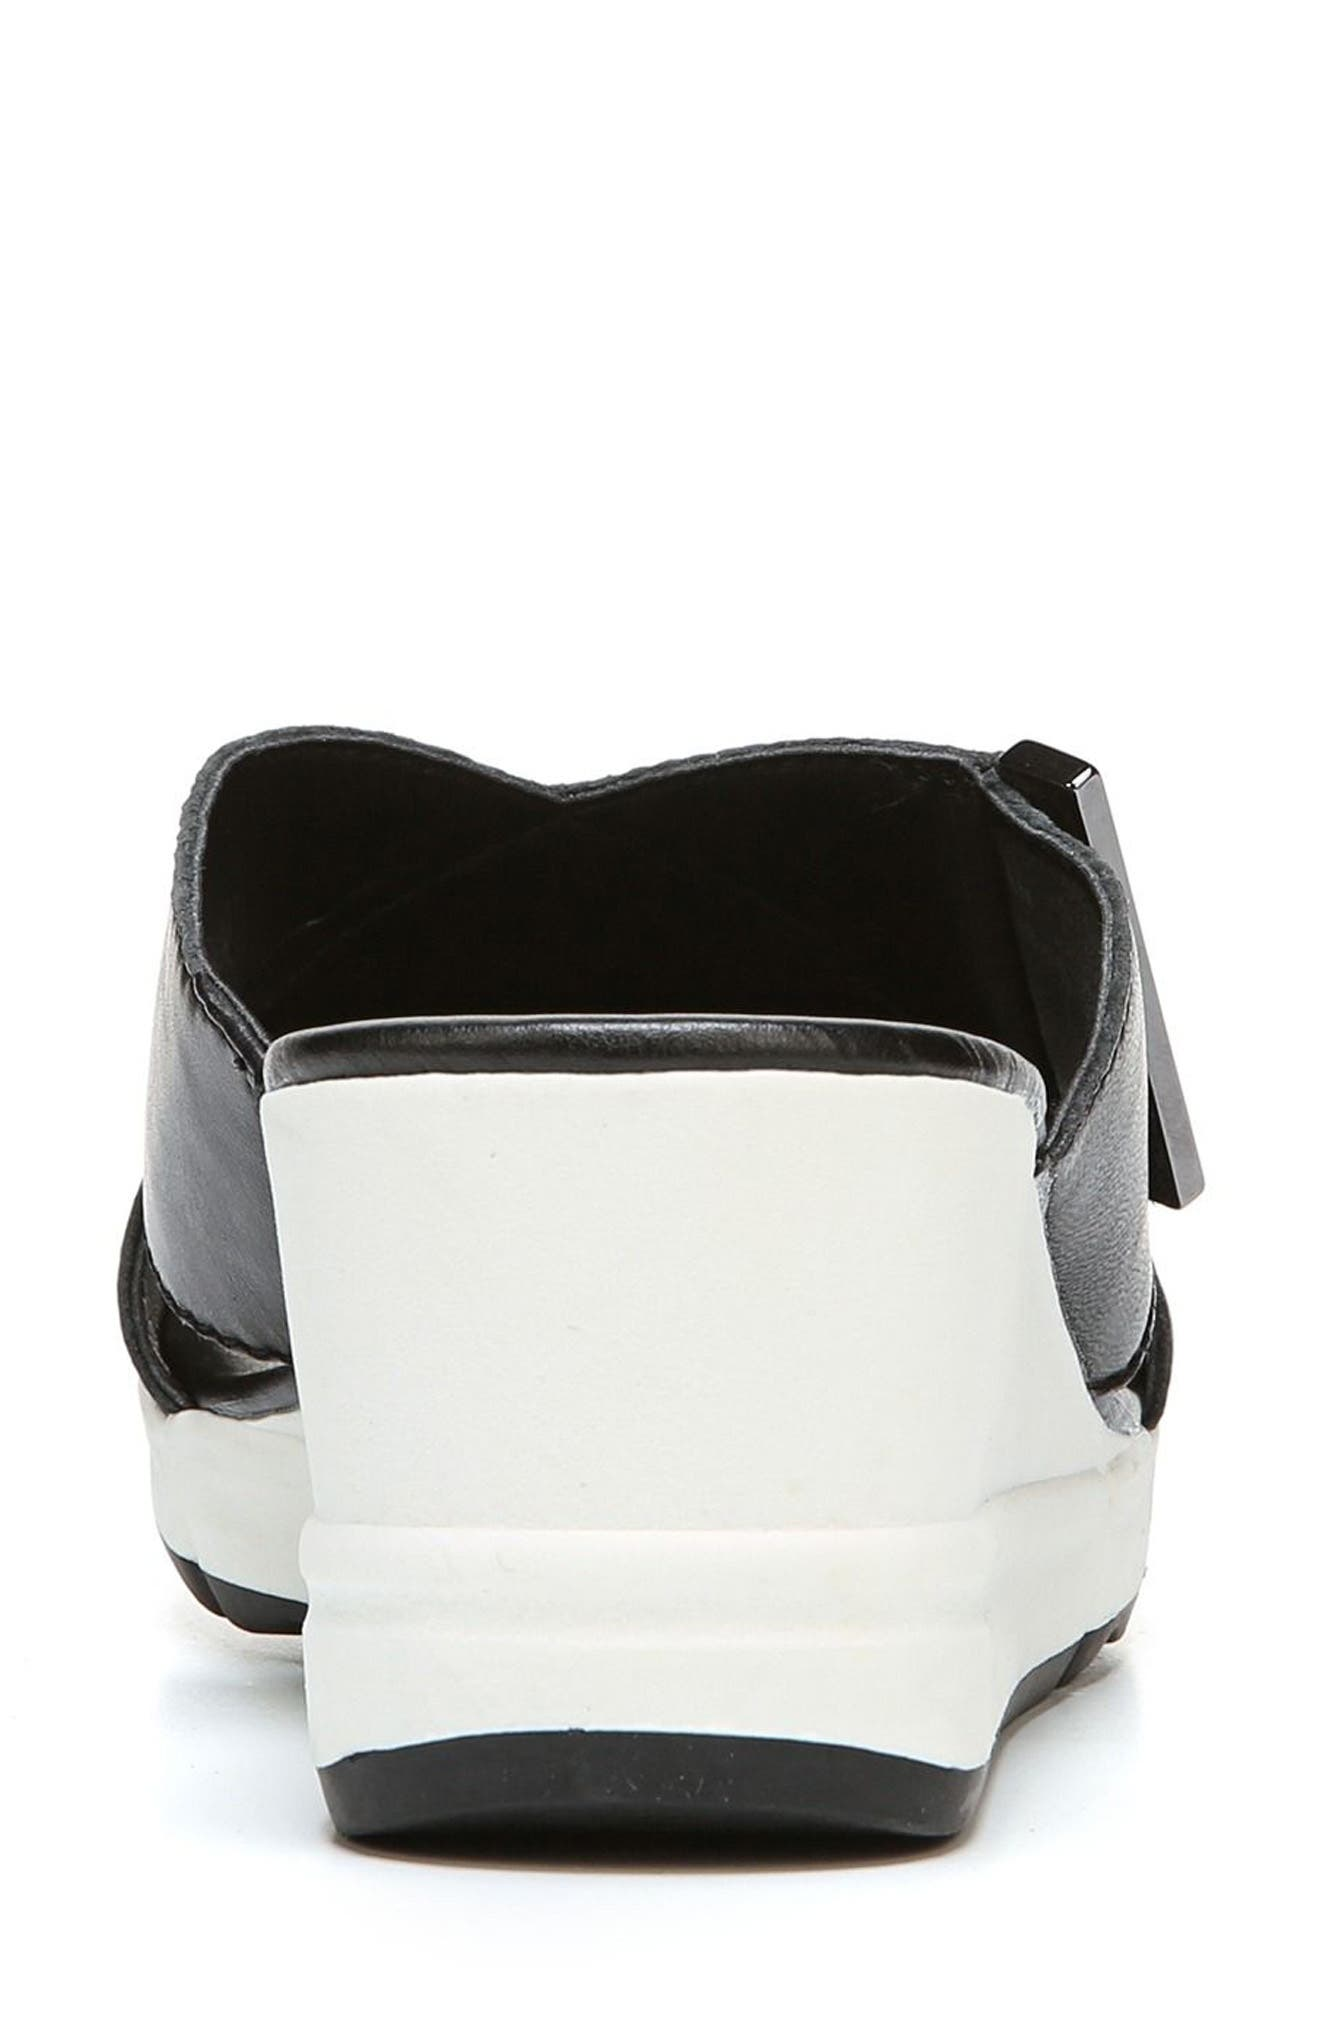 Izzy Wedge Sandal,                             Alternate thumbnail 7, color,                             BLACK LEATHER